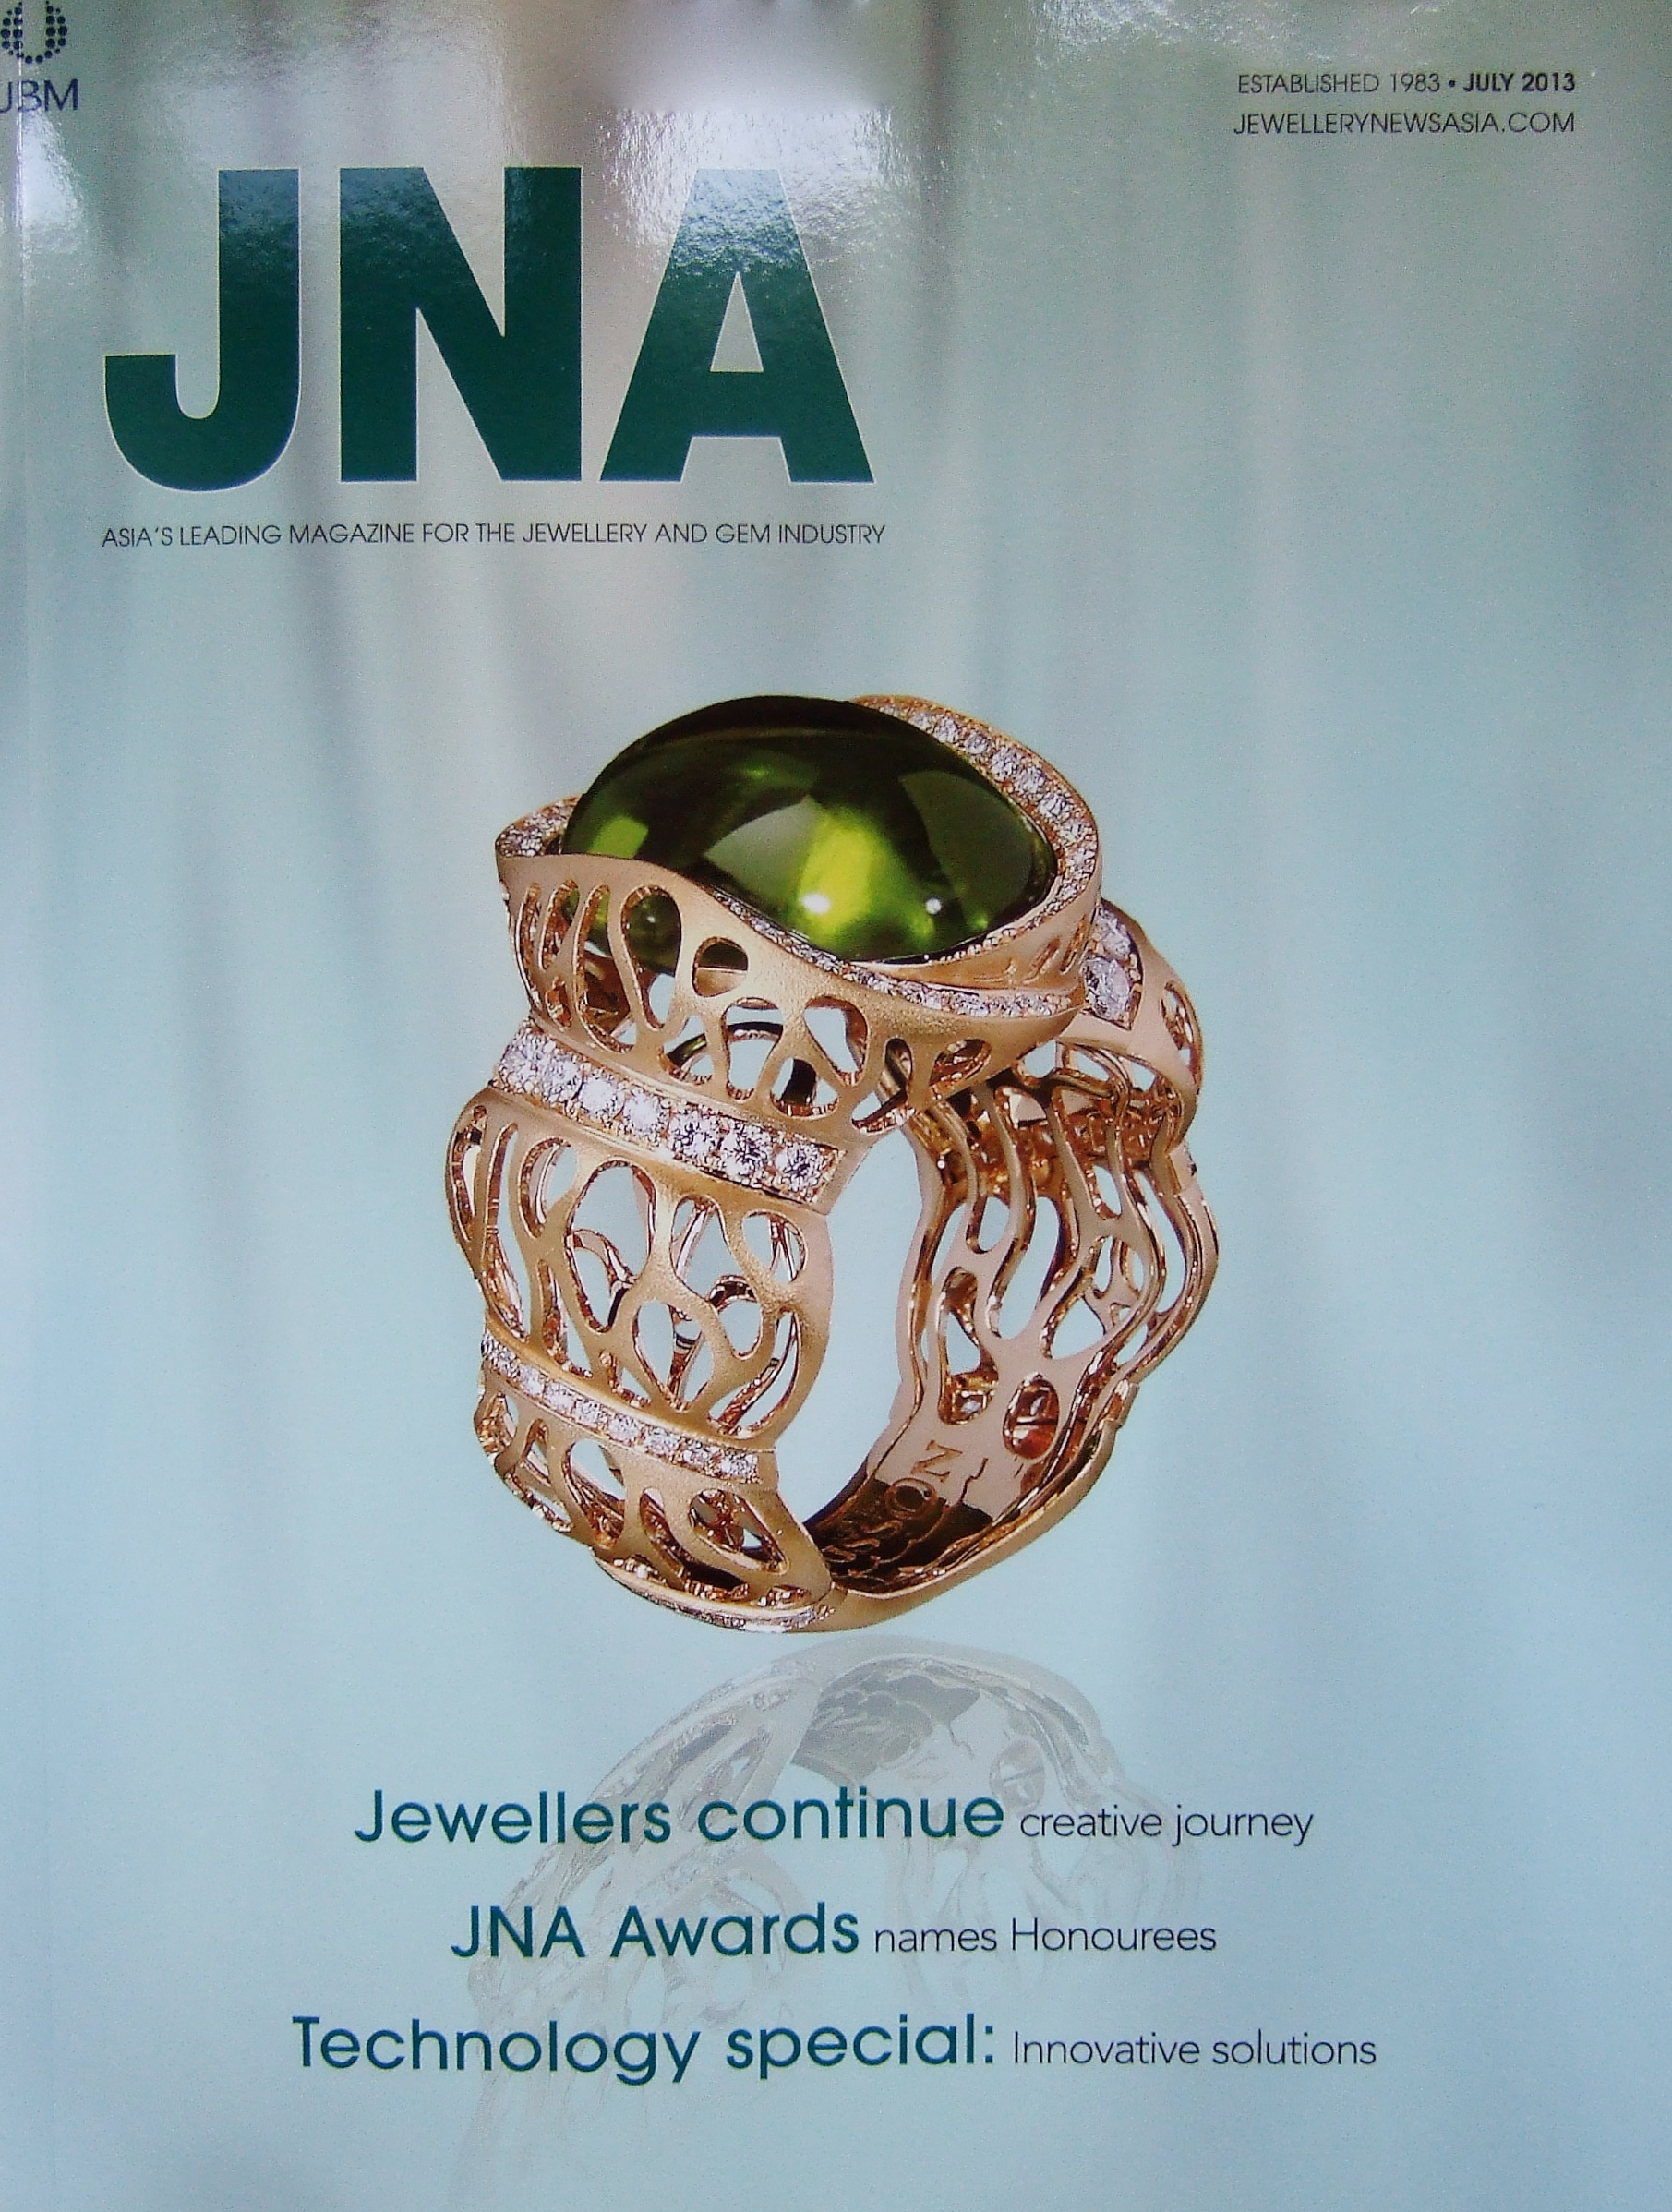 Cover - Jewellery News Asia, July 2013 Issue 347